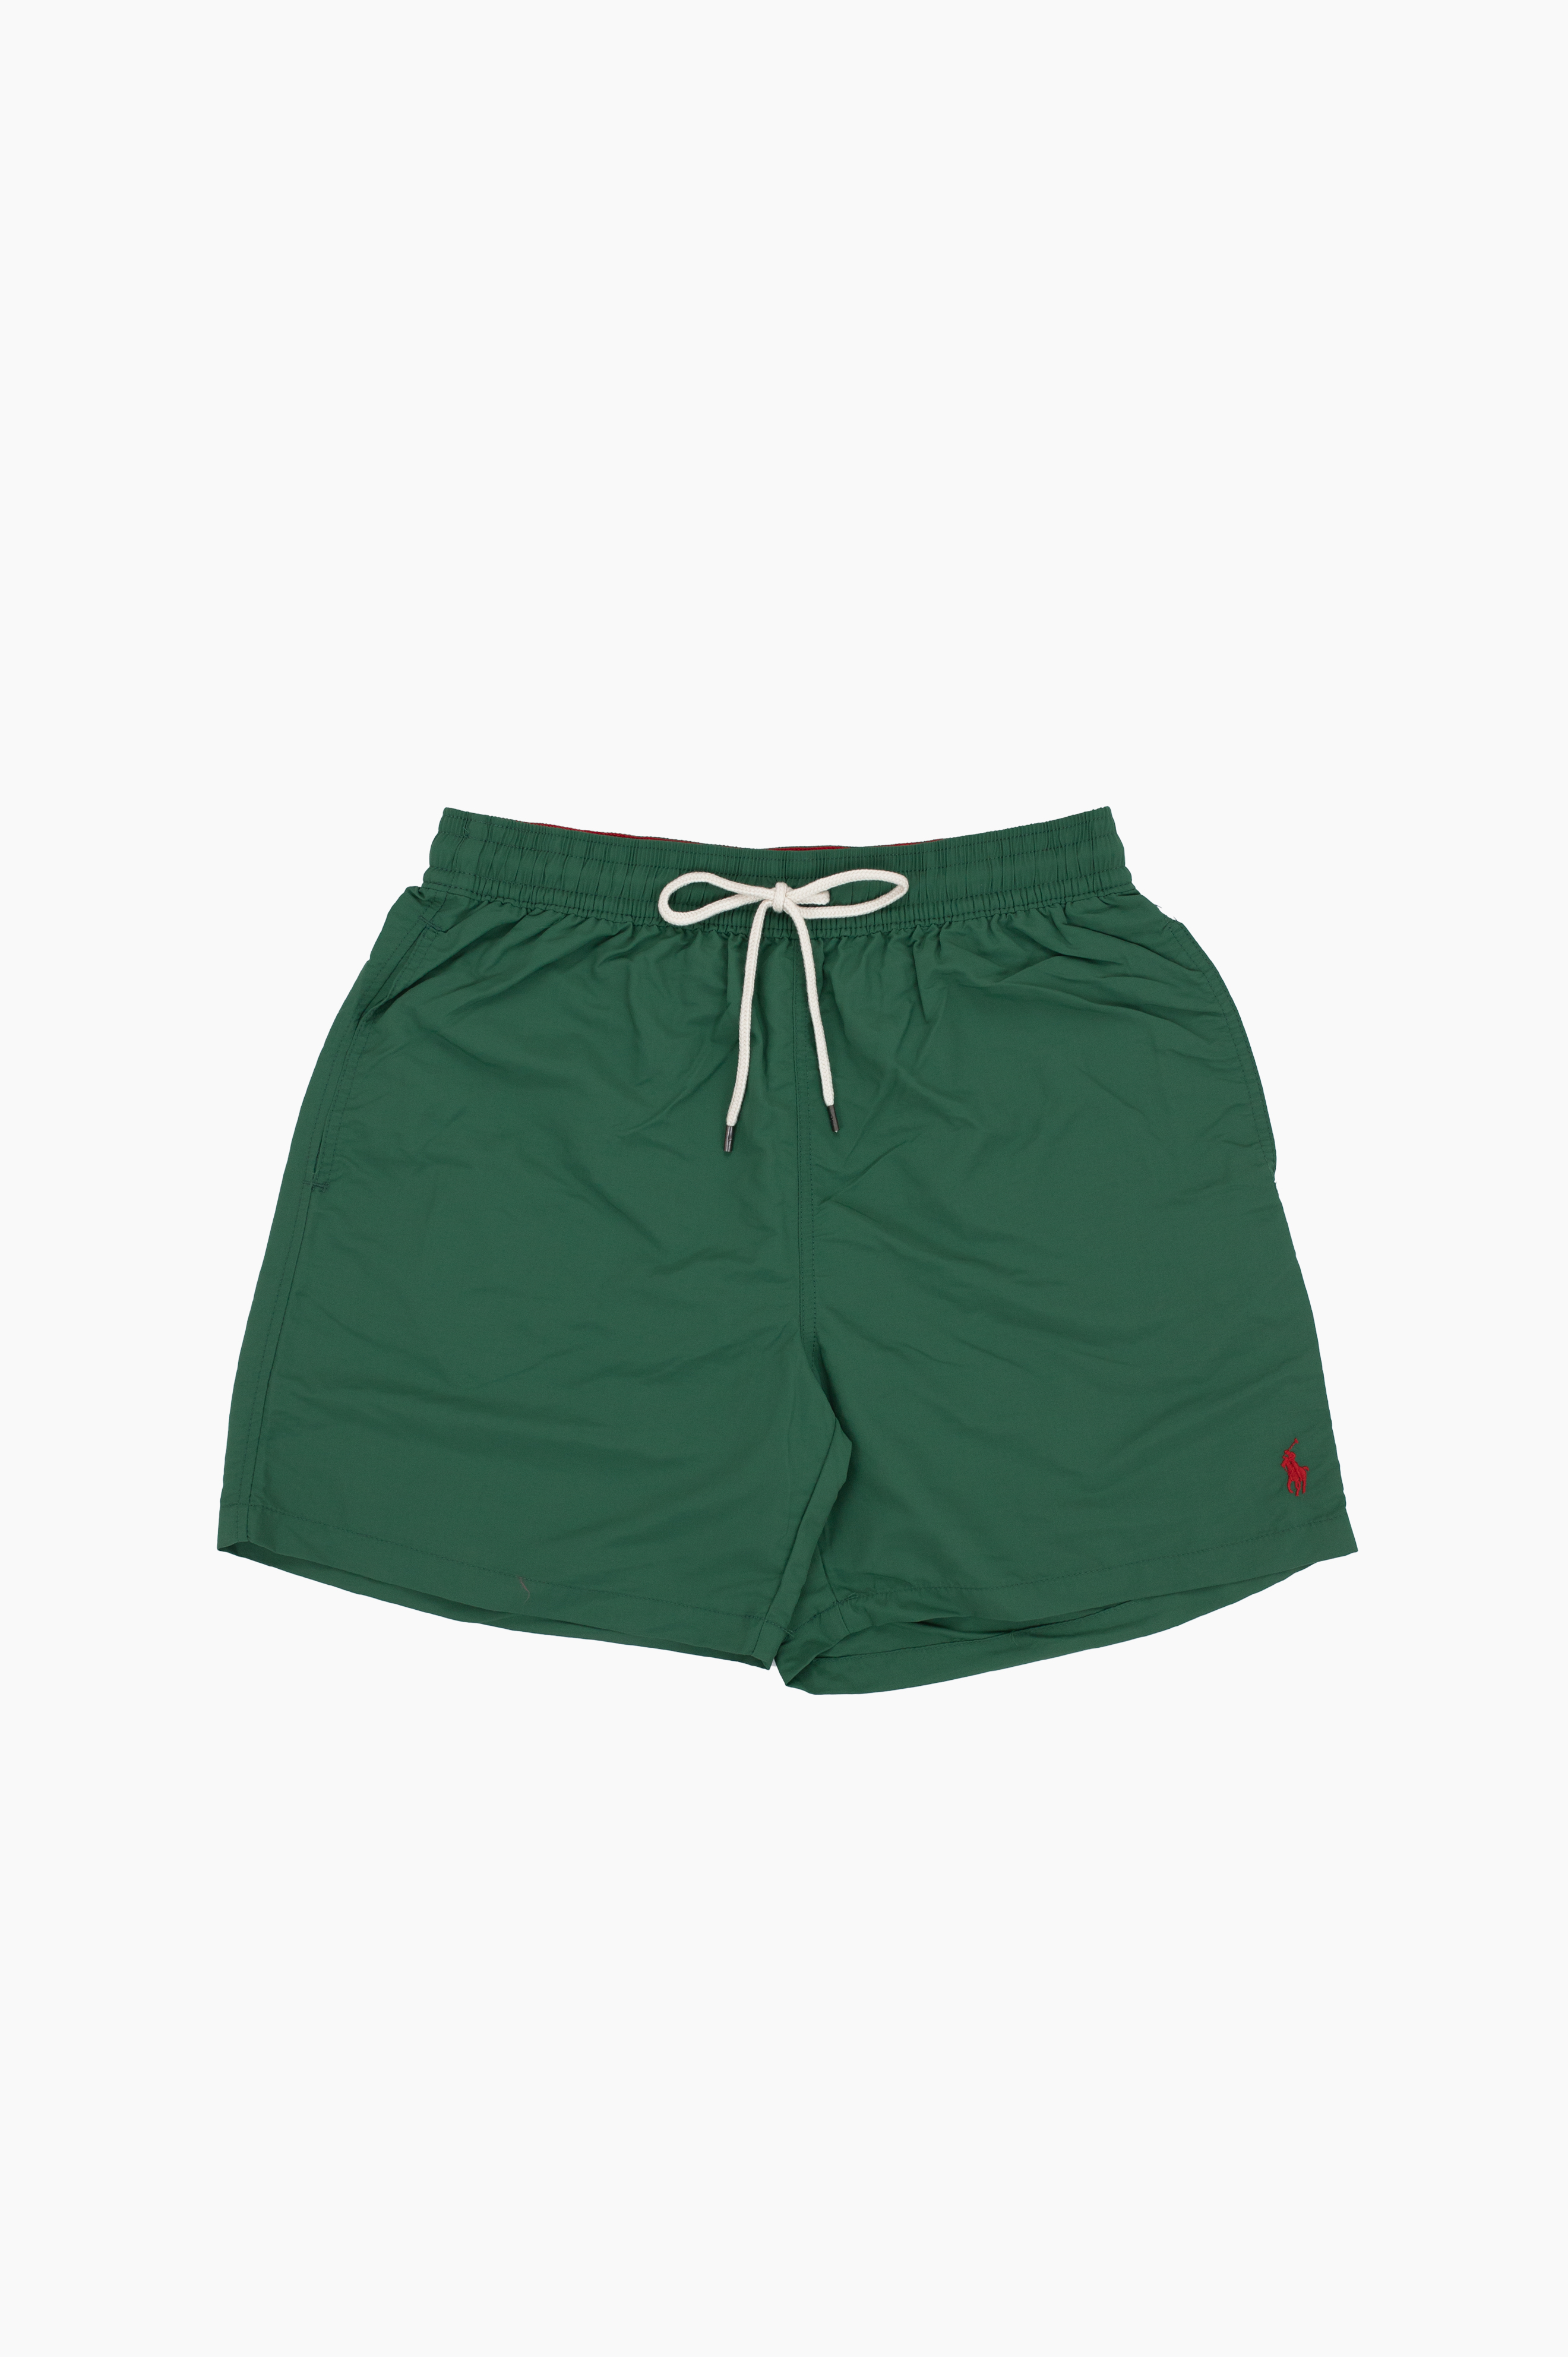 Classic Traveller Swim Short Green